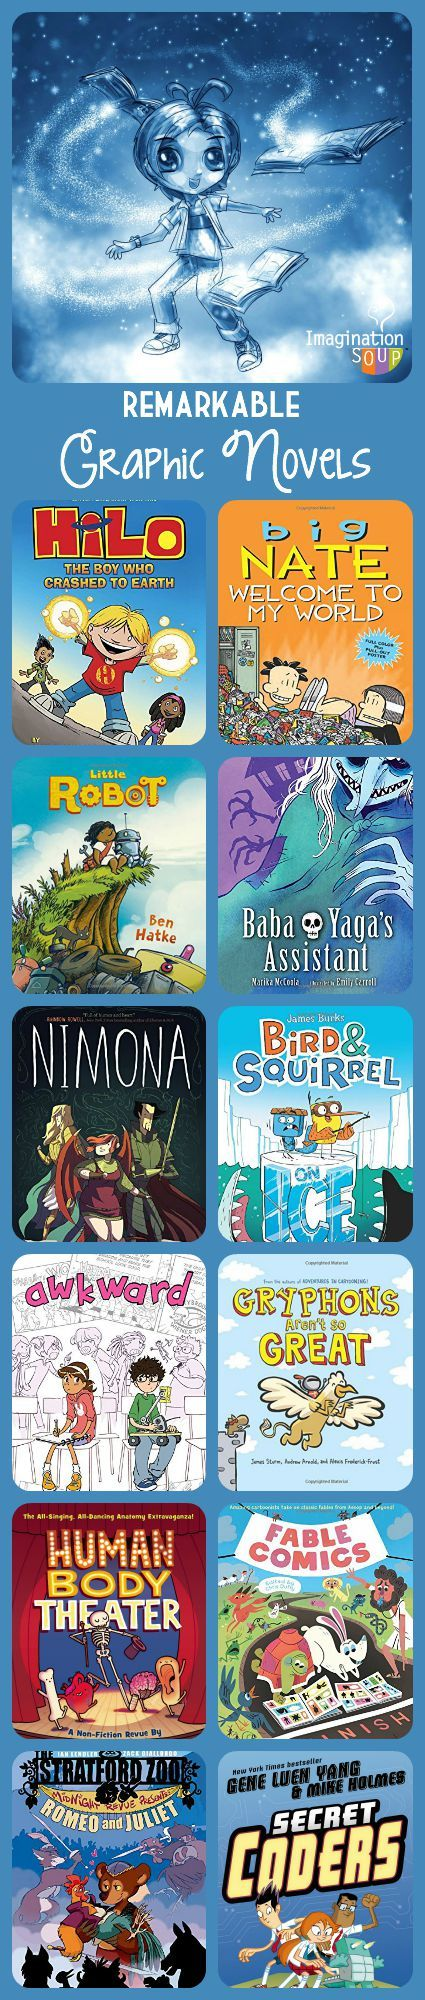 Remarkable Graphic Novels For Kids, Fall 2015